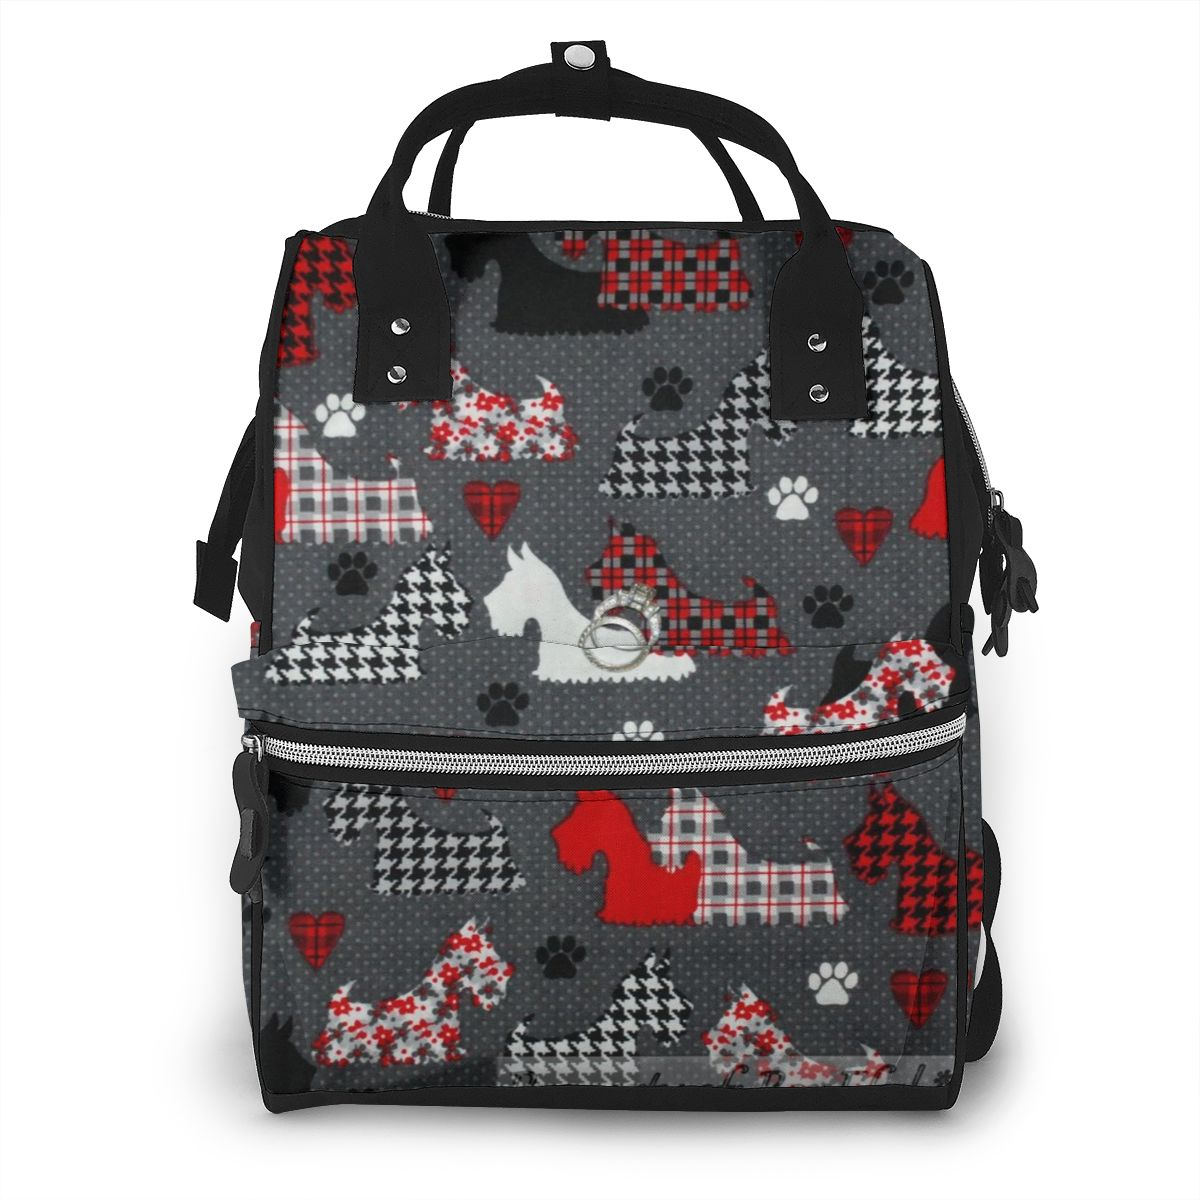 NOISYDESIGNS Westie Terrier Dog Print Baby Bag For Mommy Diaper Bag Backpack Travel Waterproof Nappy Changing Maternity Bags